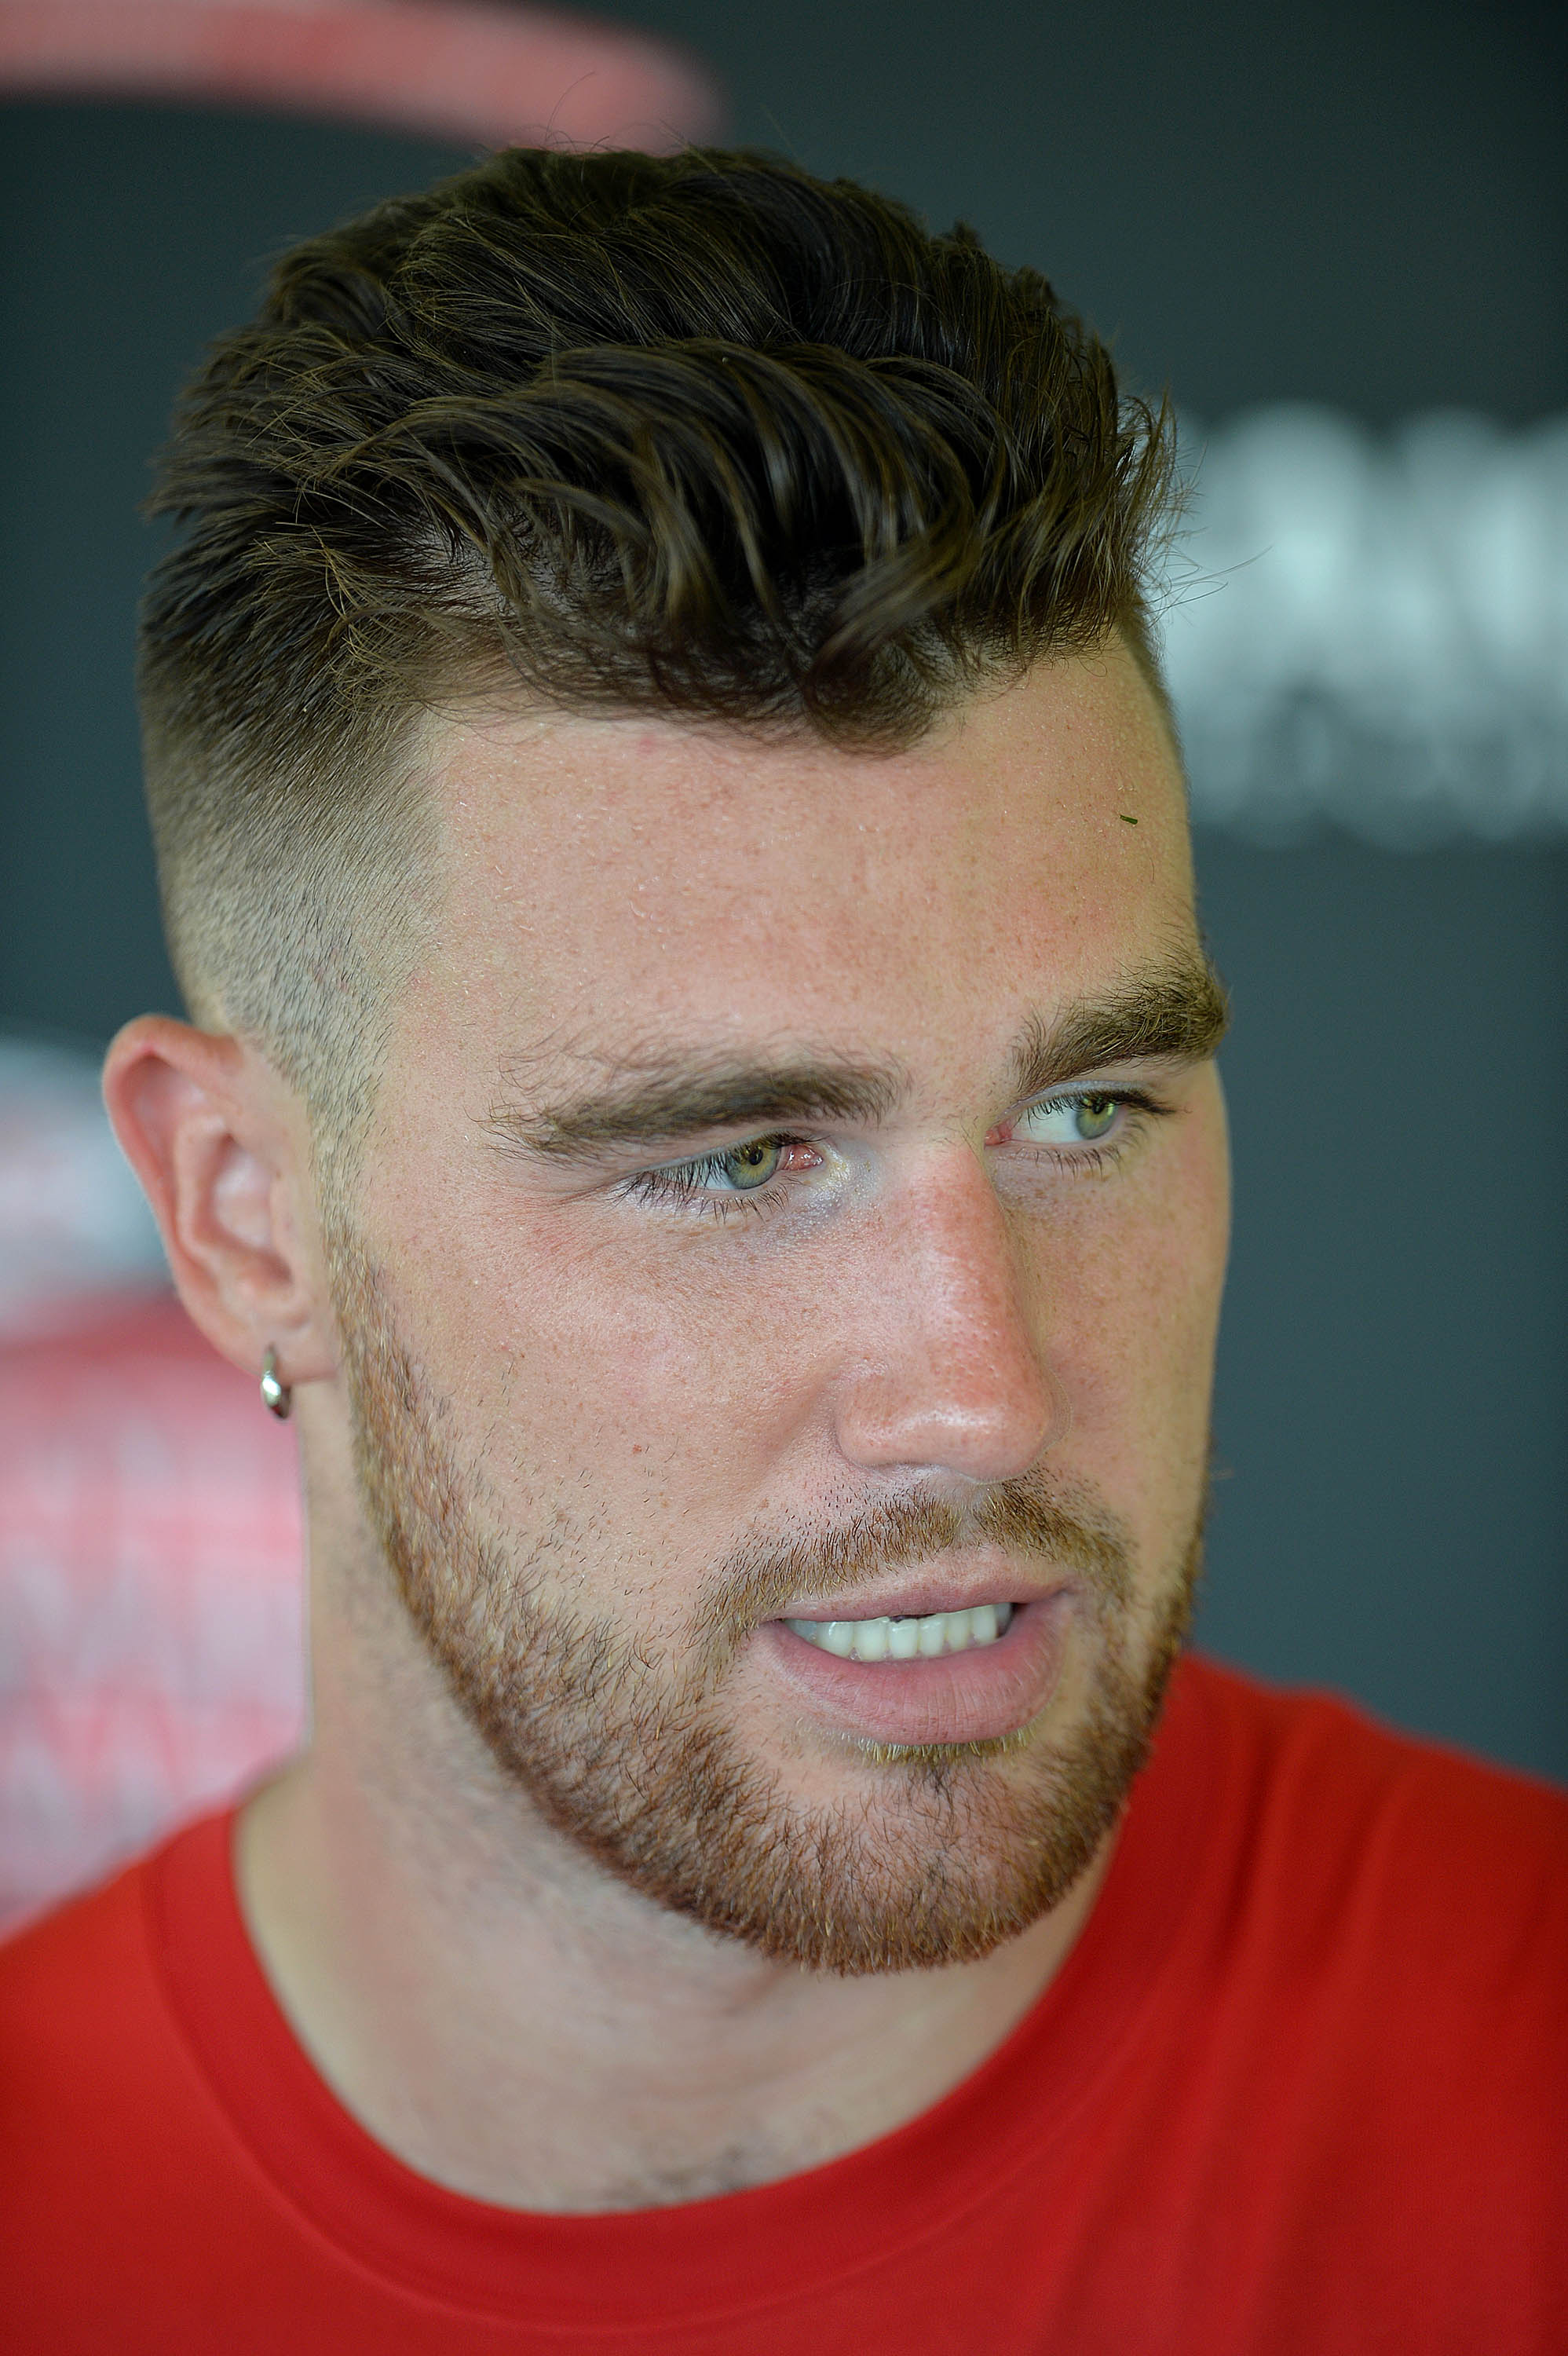 Kansas City Chiefs tight end Travis Kelce addresses members of the media during NFL football training camp practice Sunday, Aug. 2, 2015, in St. Joseph, Mo. (Andrew Carpenean/The St. Joseph News-Press via AP) MANDATORY CREDIT